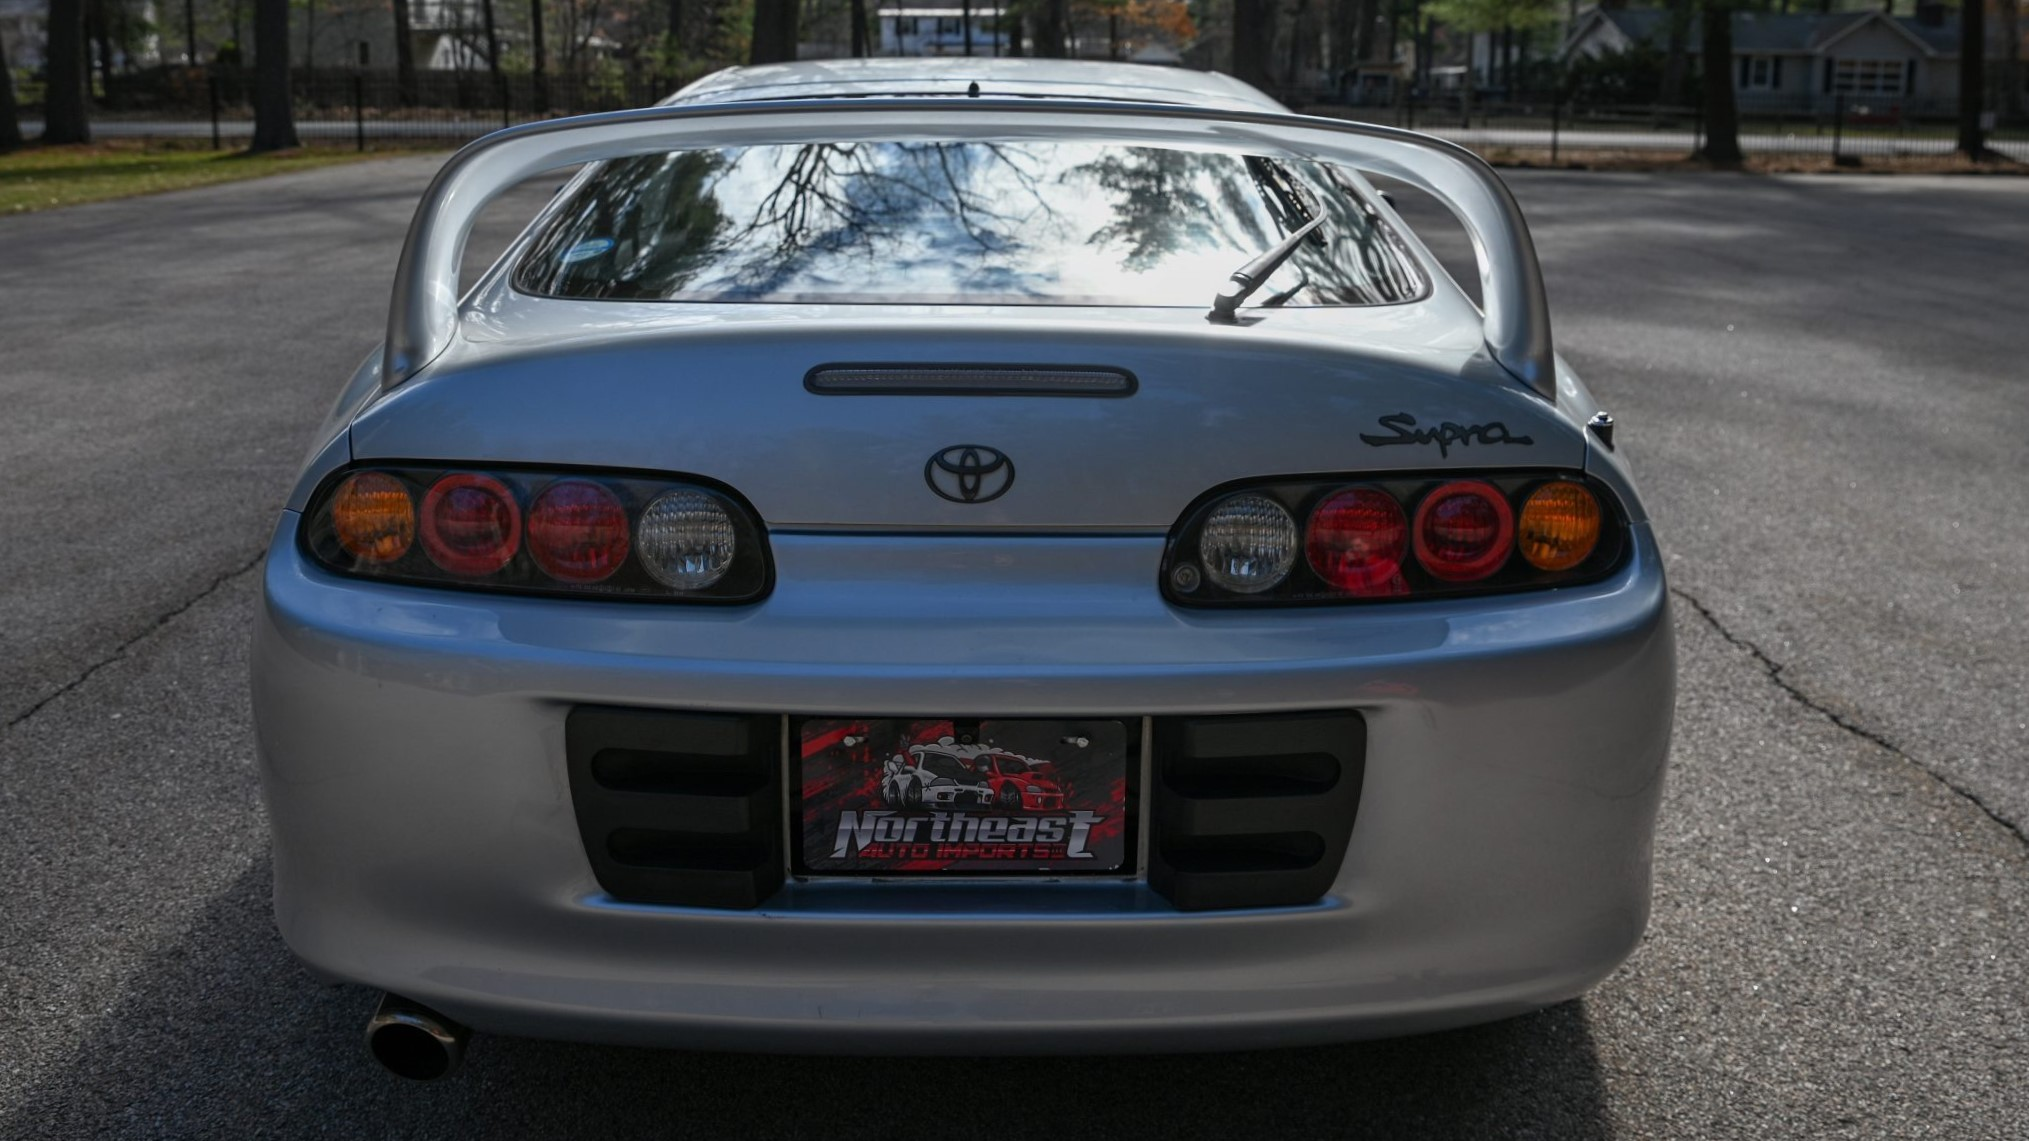 The Toyota RZ Rear view